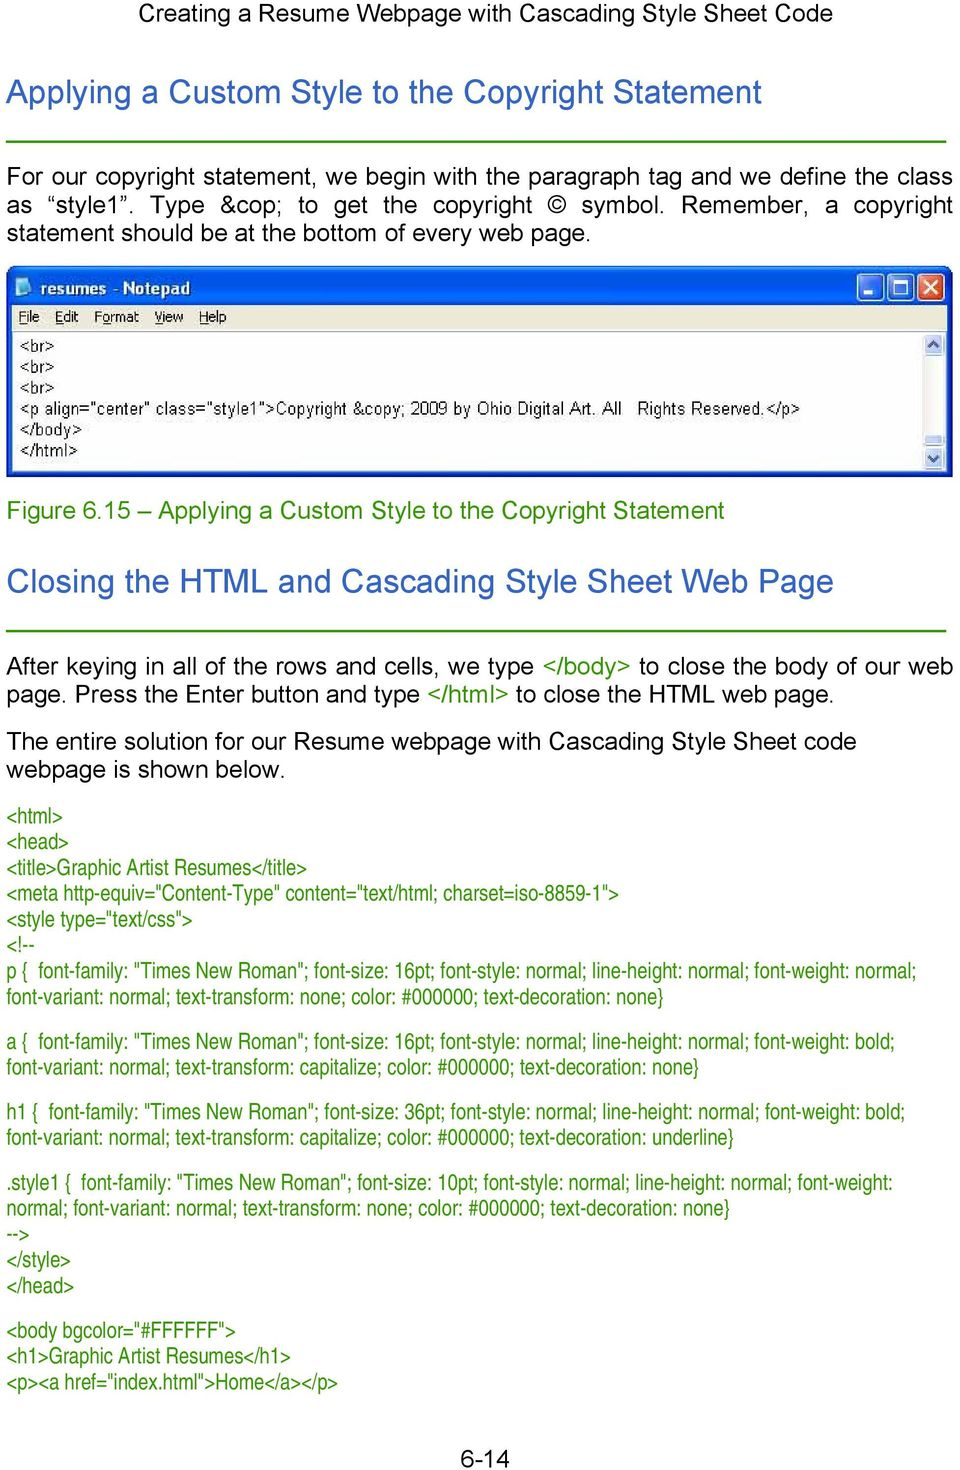 15 Applying a Custom Style to the Copyright Statement Closing the HTML and Cascading Style Sheet Web Page After keying in all of the rows and cells, we type </body> to close the body of our web page.